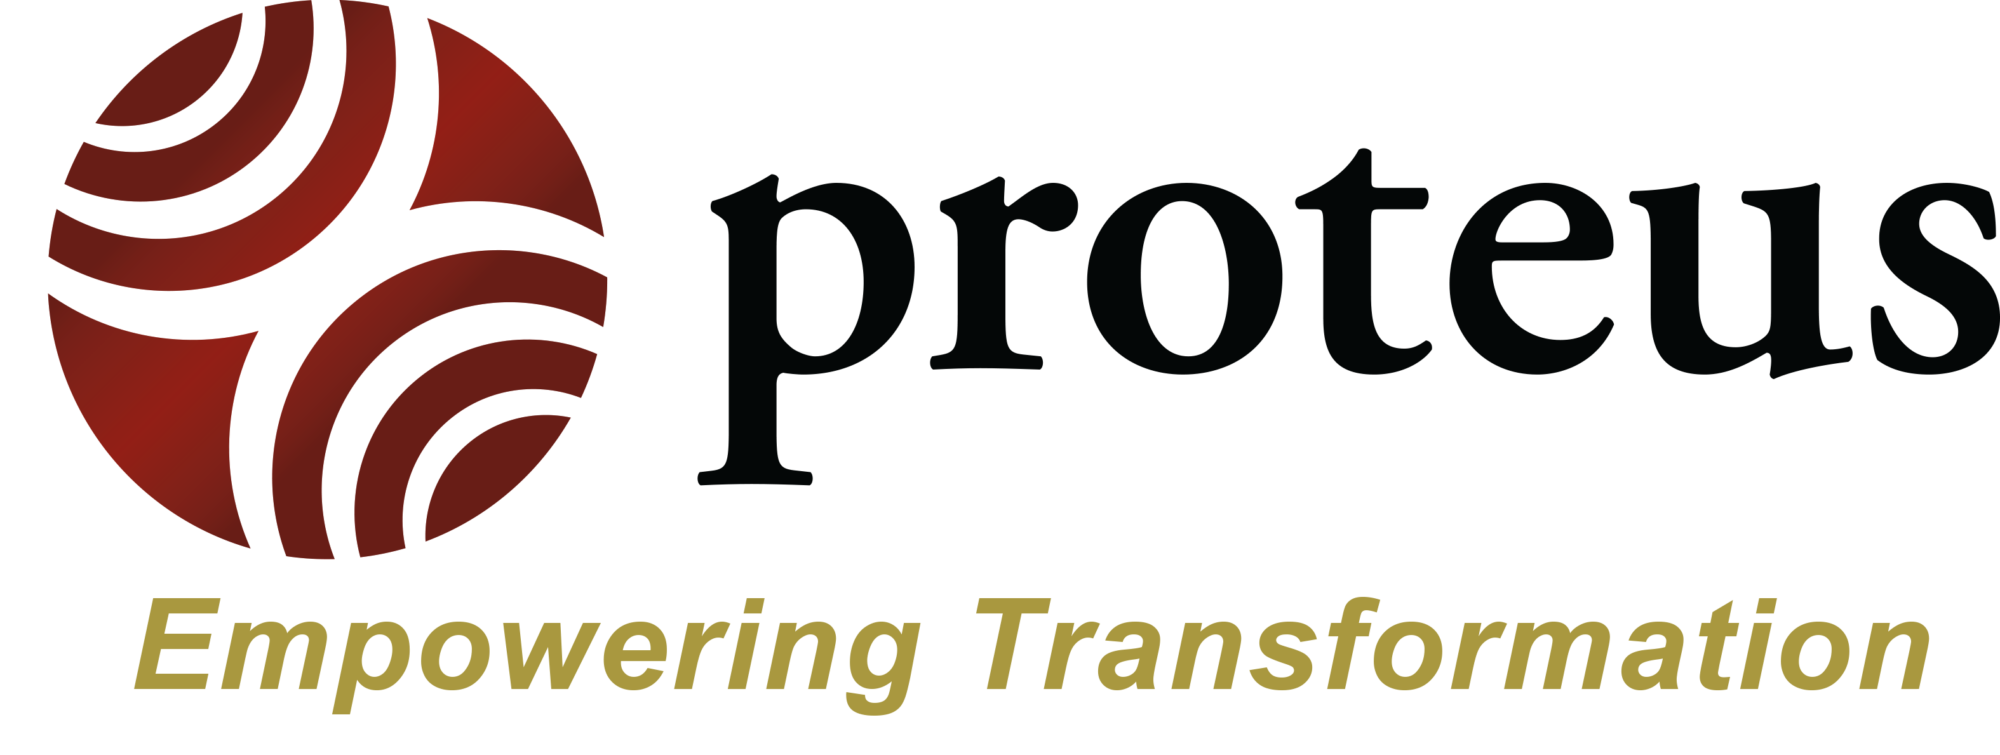 Proteus-branding-with-detail